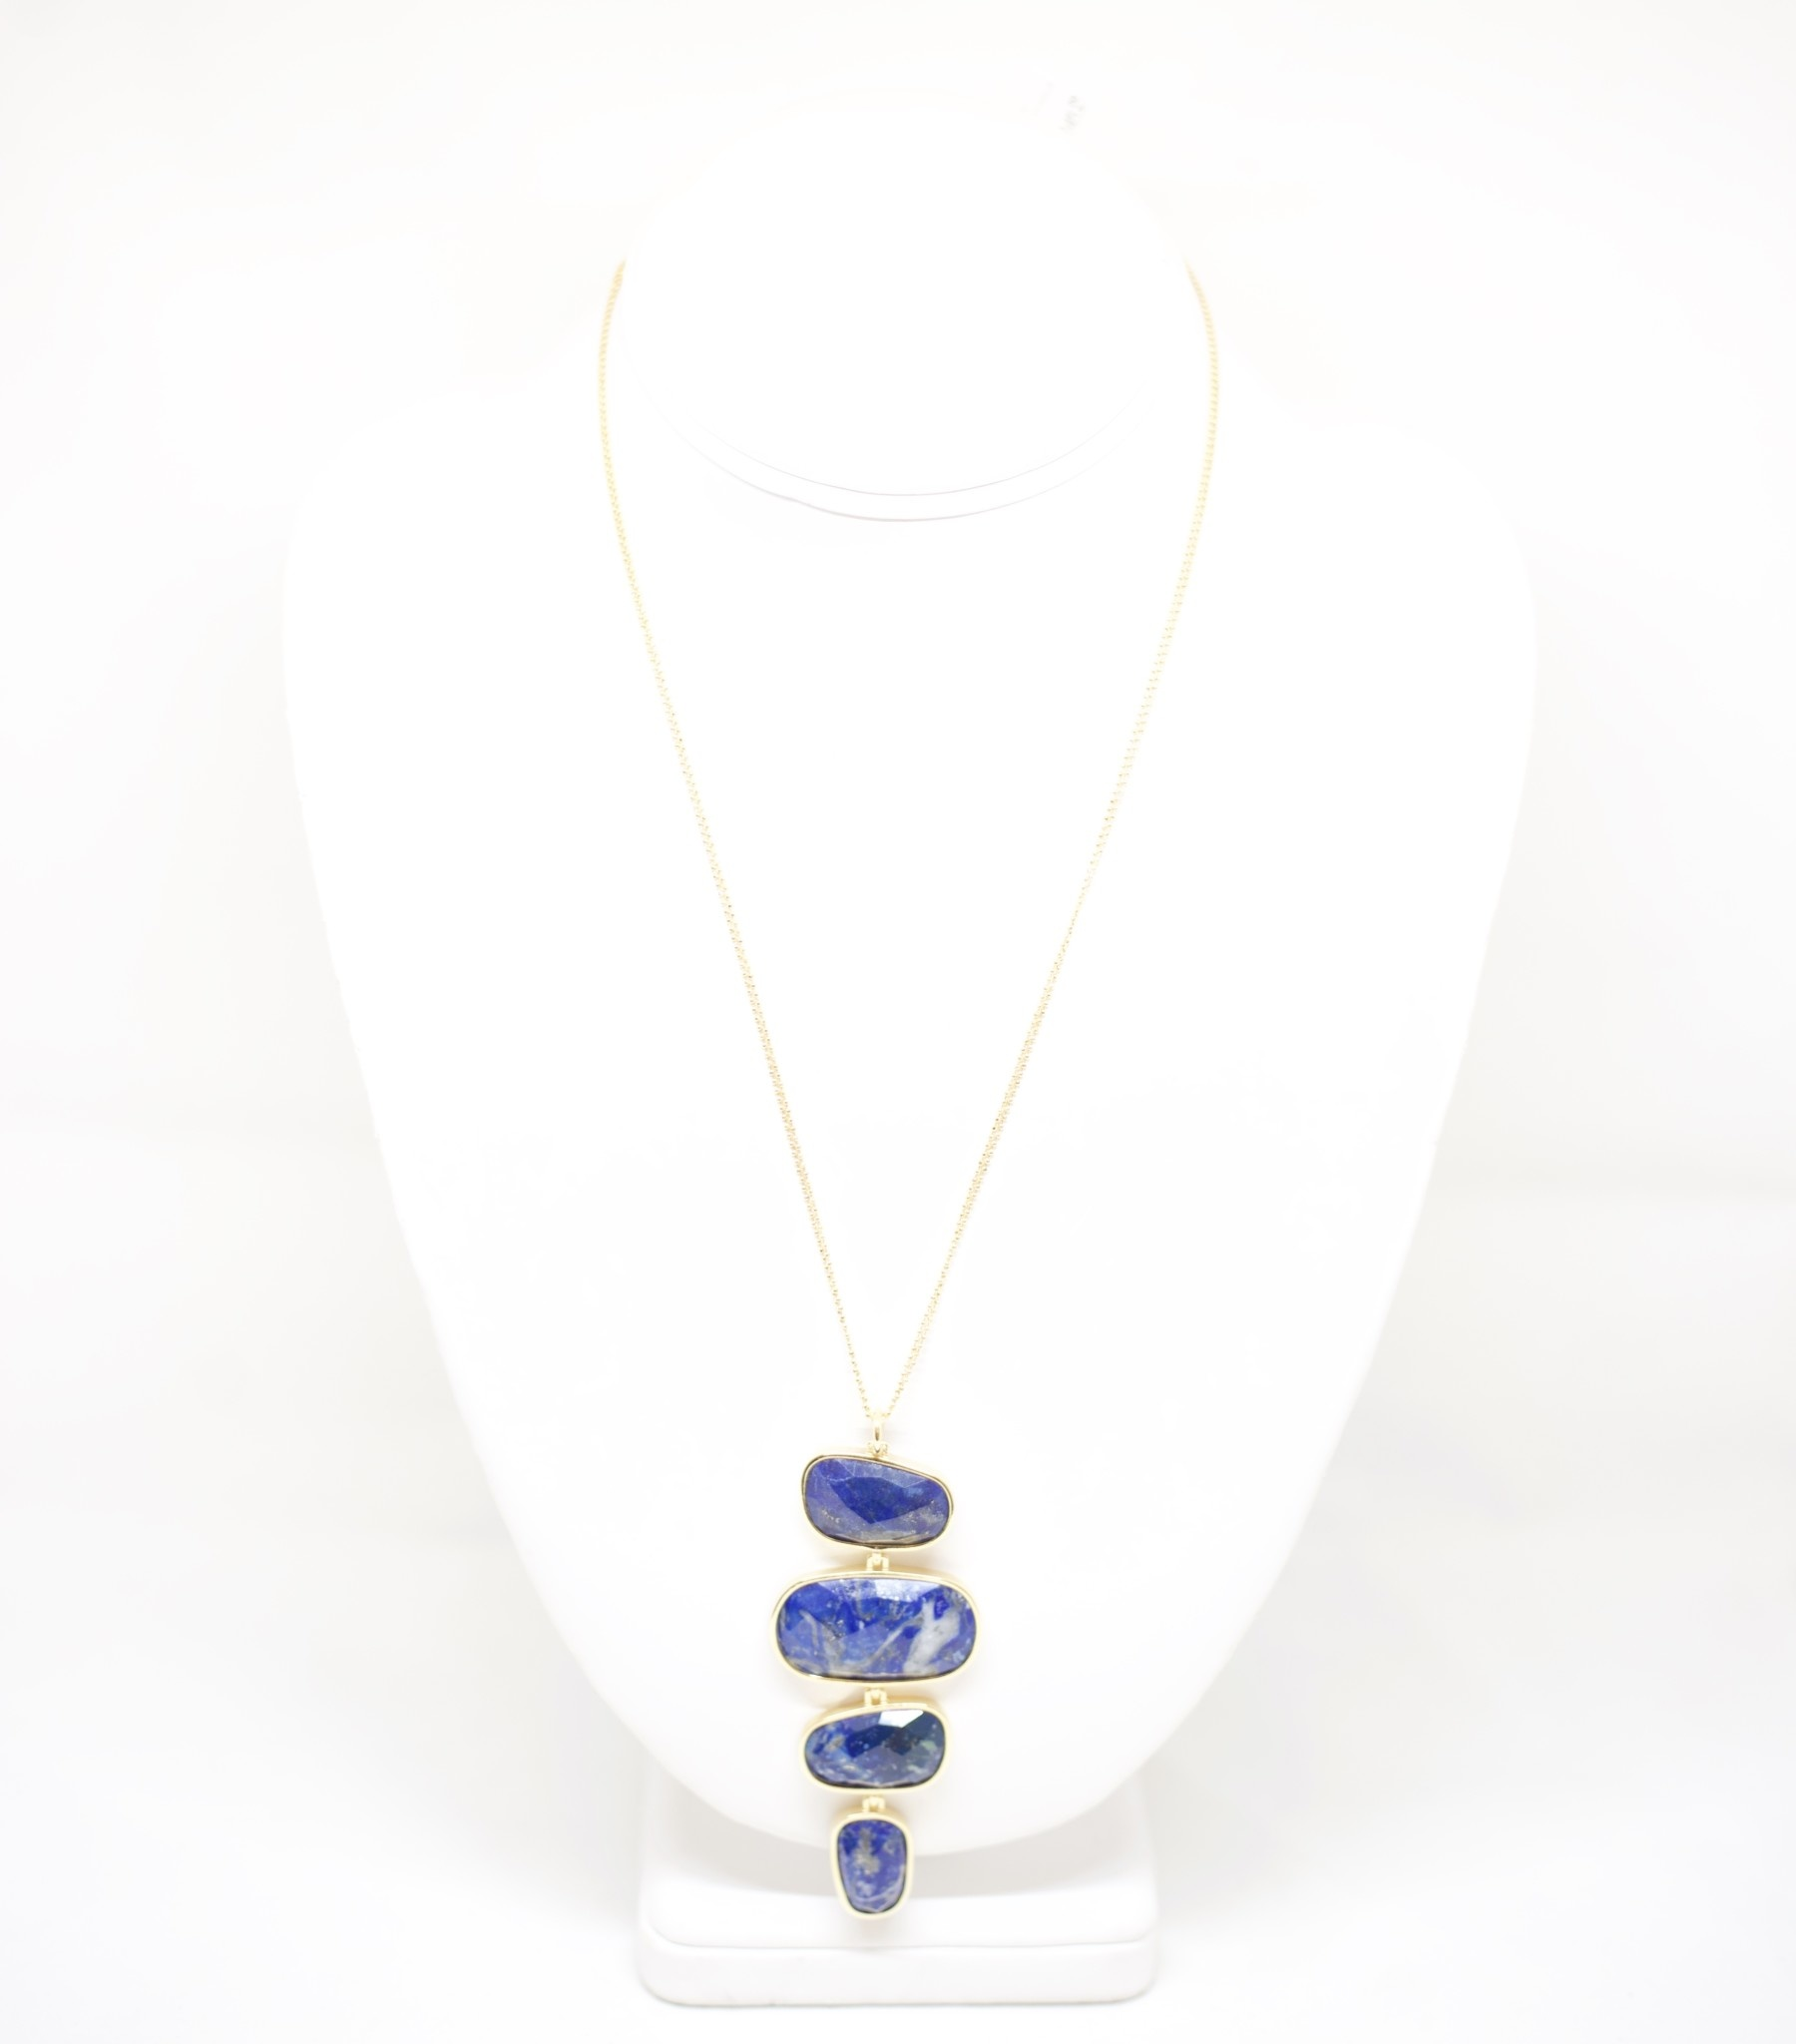 Marcia Moran Gold Plated Necklace W/Vertical Four Stone Lapis